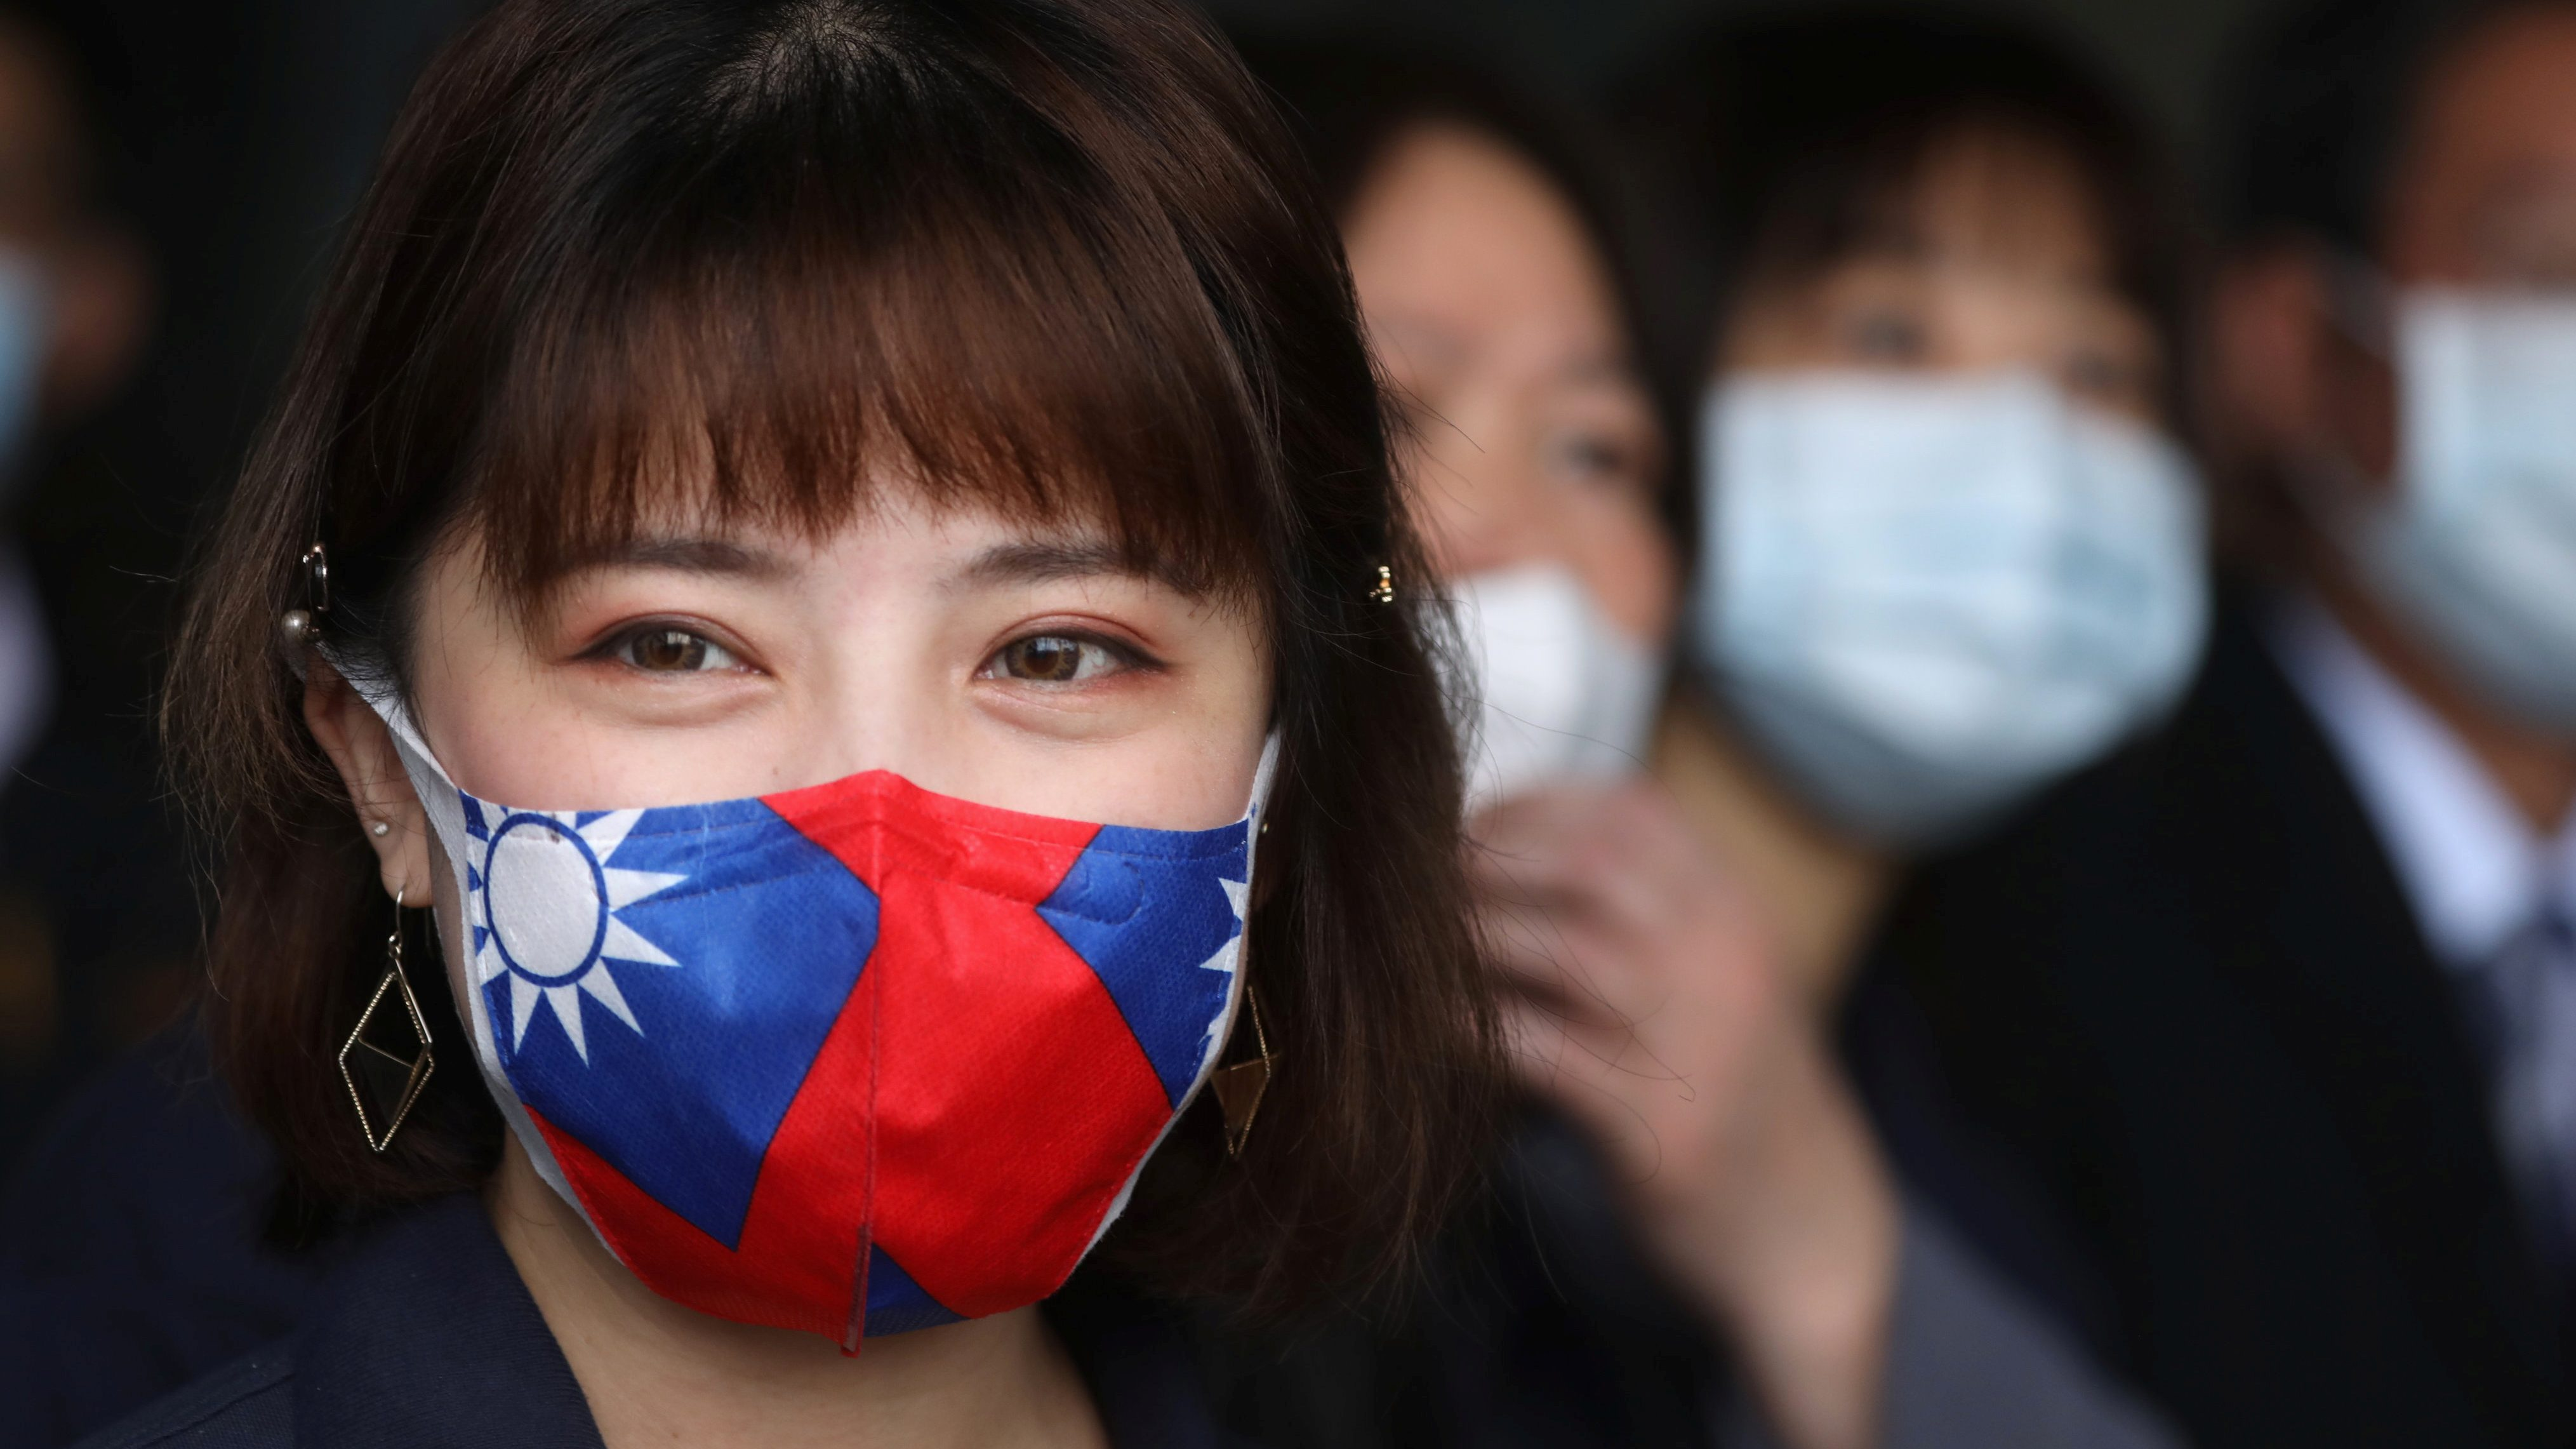 A factory employee wears a face mask with a Taiwanese flag design, as protection due to the coronavirus disease (COVID-19) outbreak, at a factory for non woven filter fabric used to make surgical face masks, in Taoyuan, Taiwan, March 30, 2020.